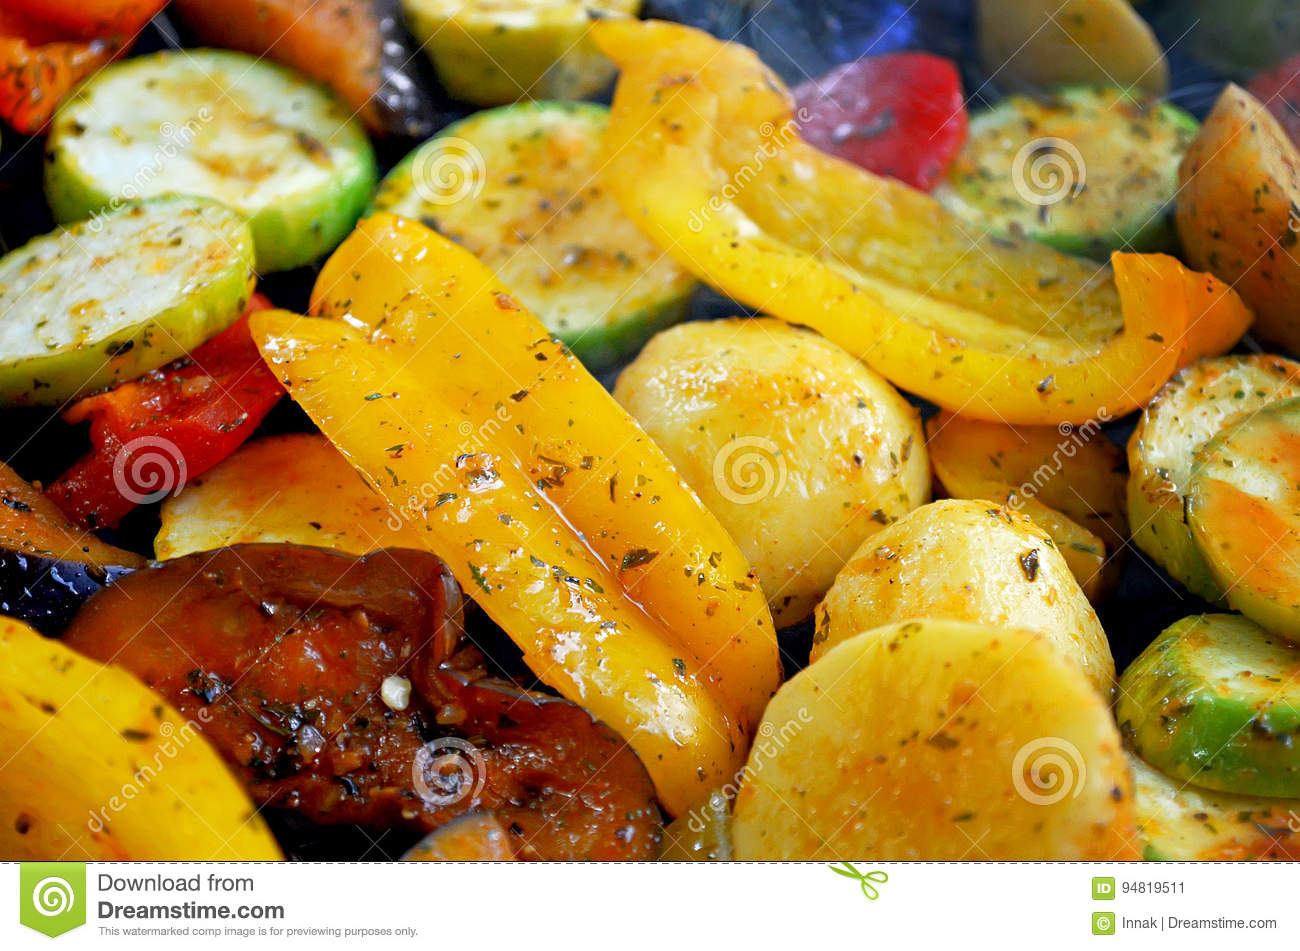 On the grid grill are fried vegetables. Potatoes, tomatoes, peppers, eggplants, cucumbers, zucchini, carrots and seasonings with o